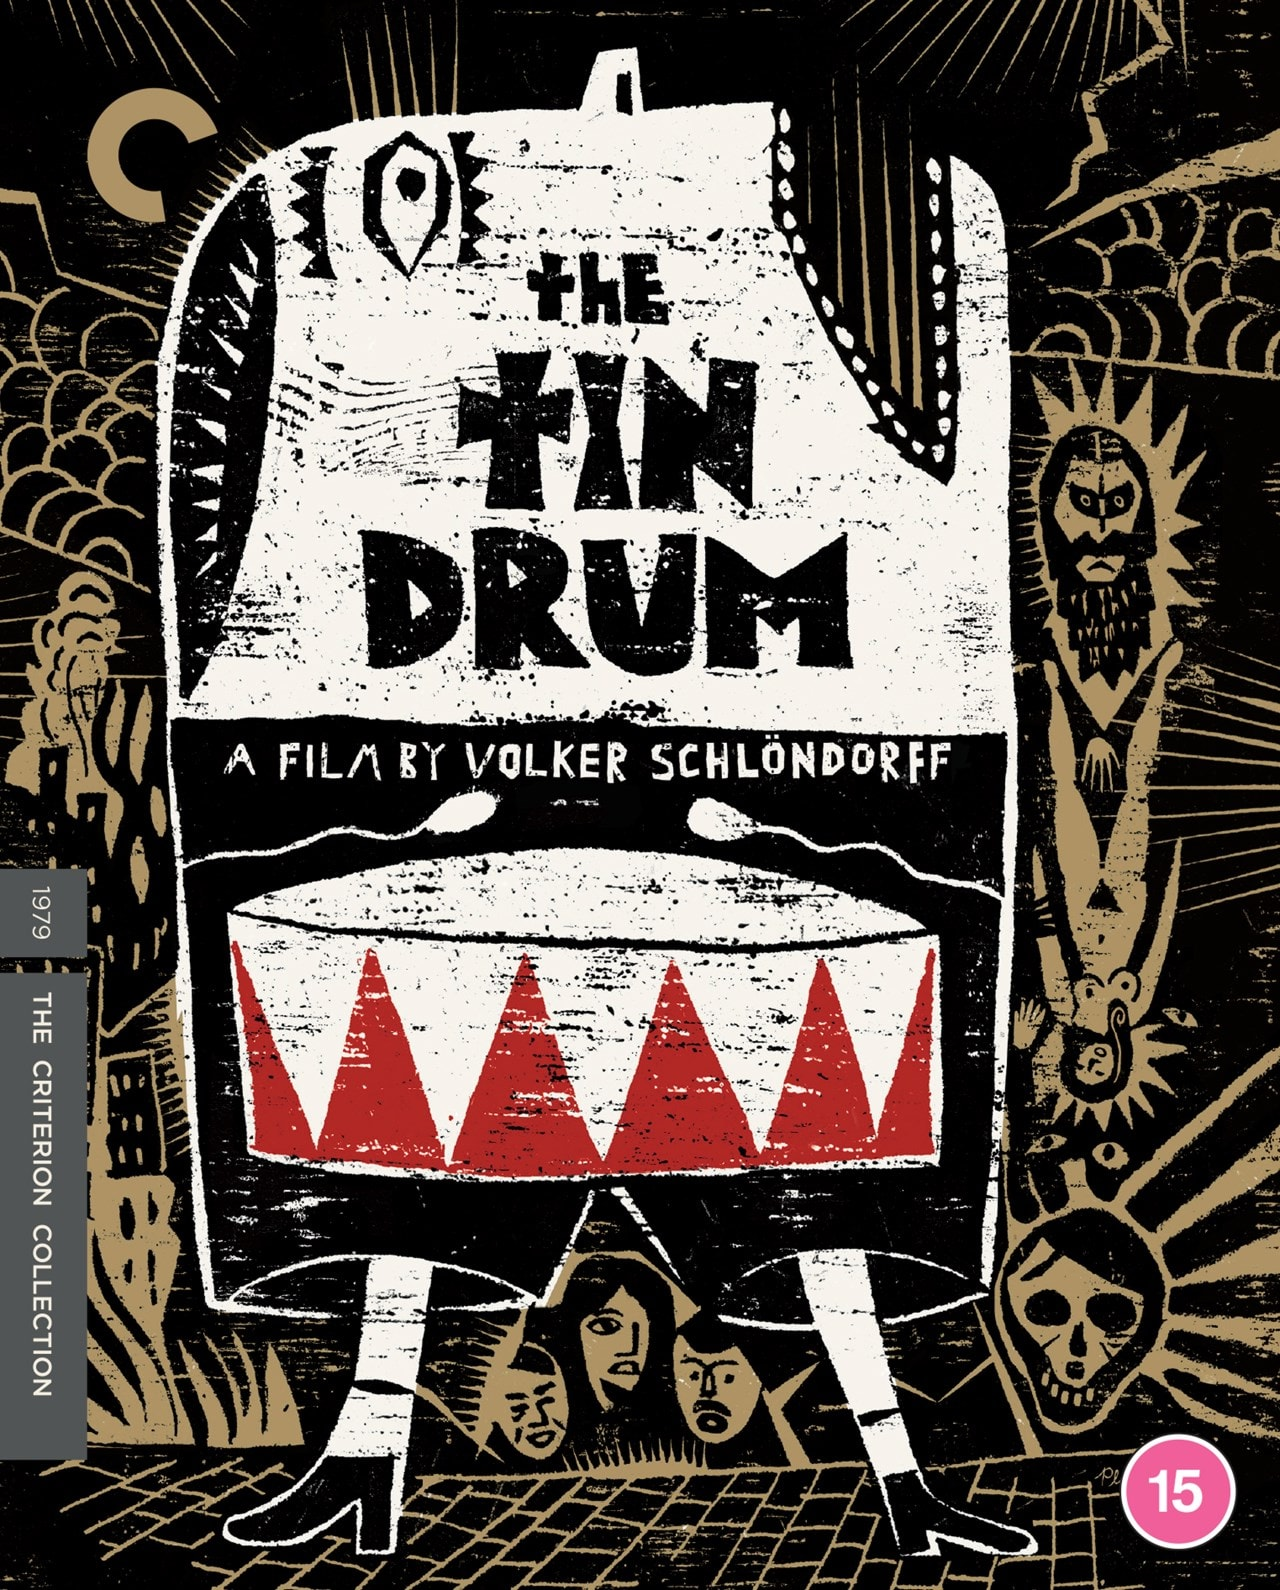 The Tin Drum - The Criterion Collection - 1